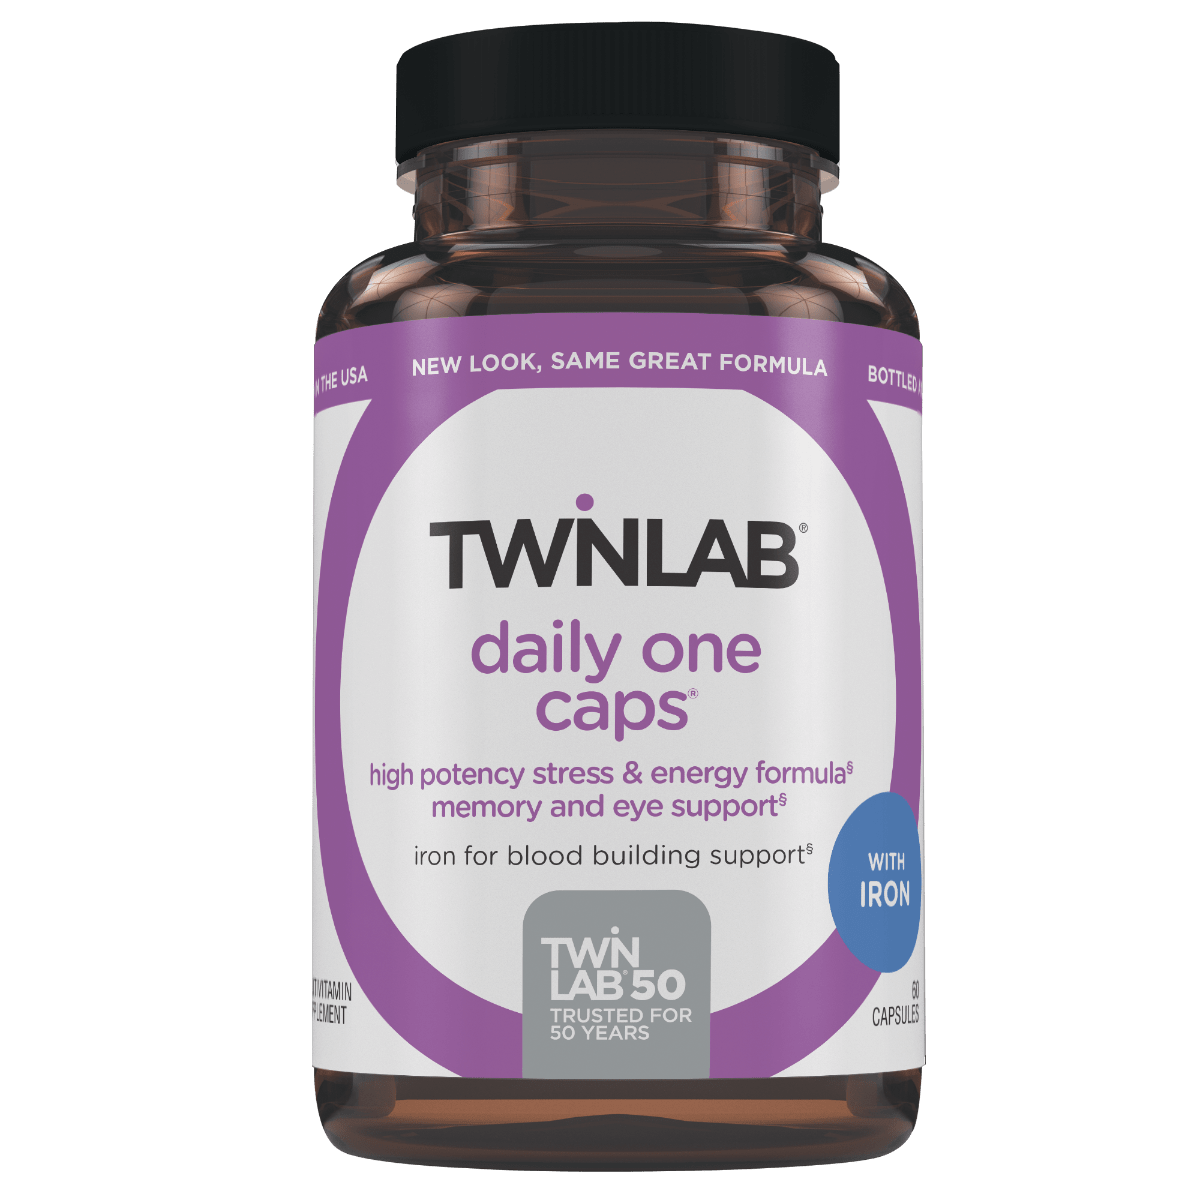 60 count Twinlab® Daily One Caps with Iron contain a blend of 26 nutrients with extra folic acid to support heart & eye health.